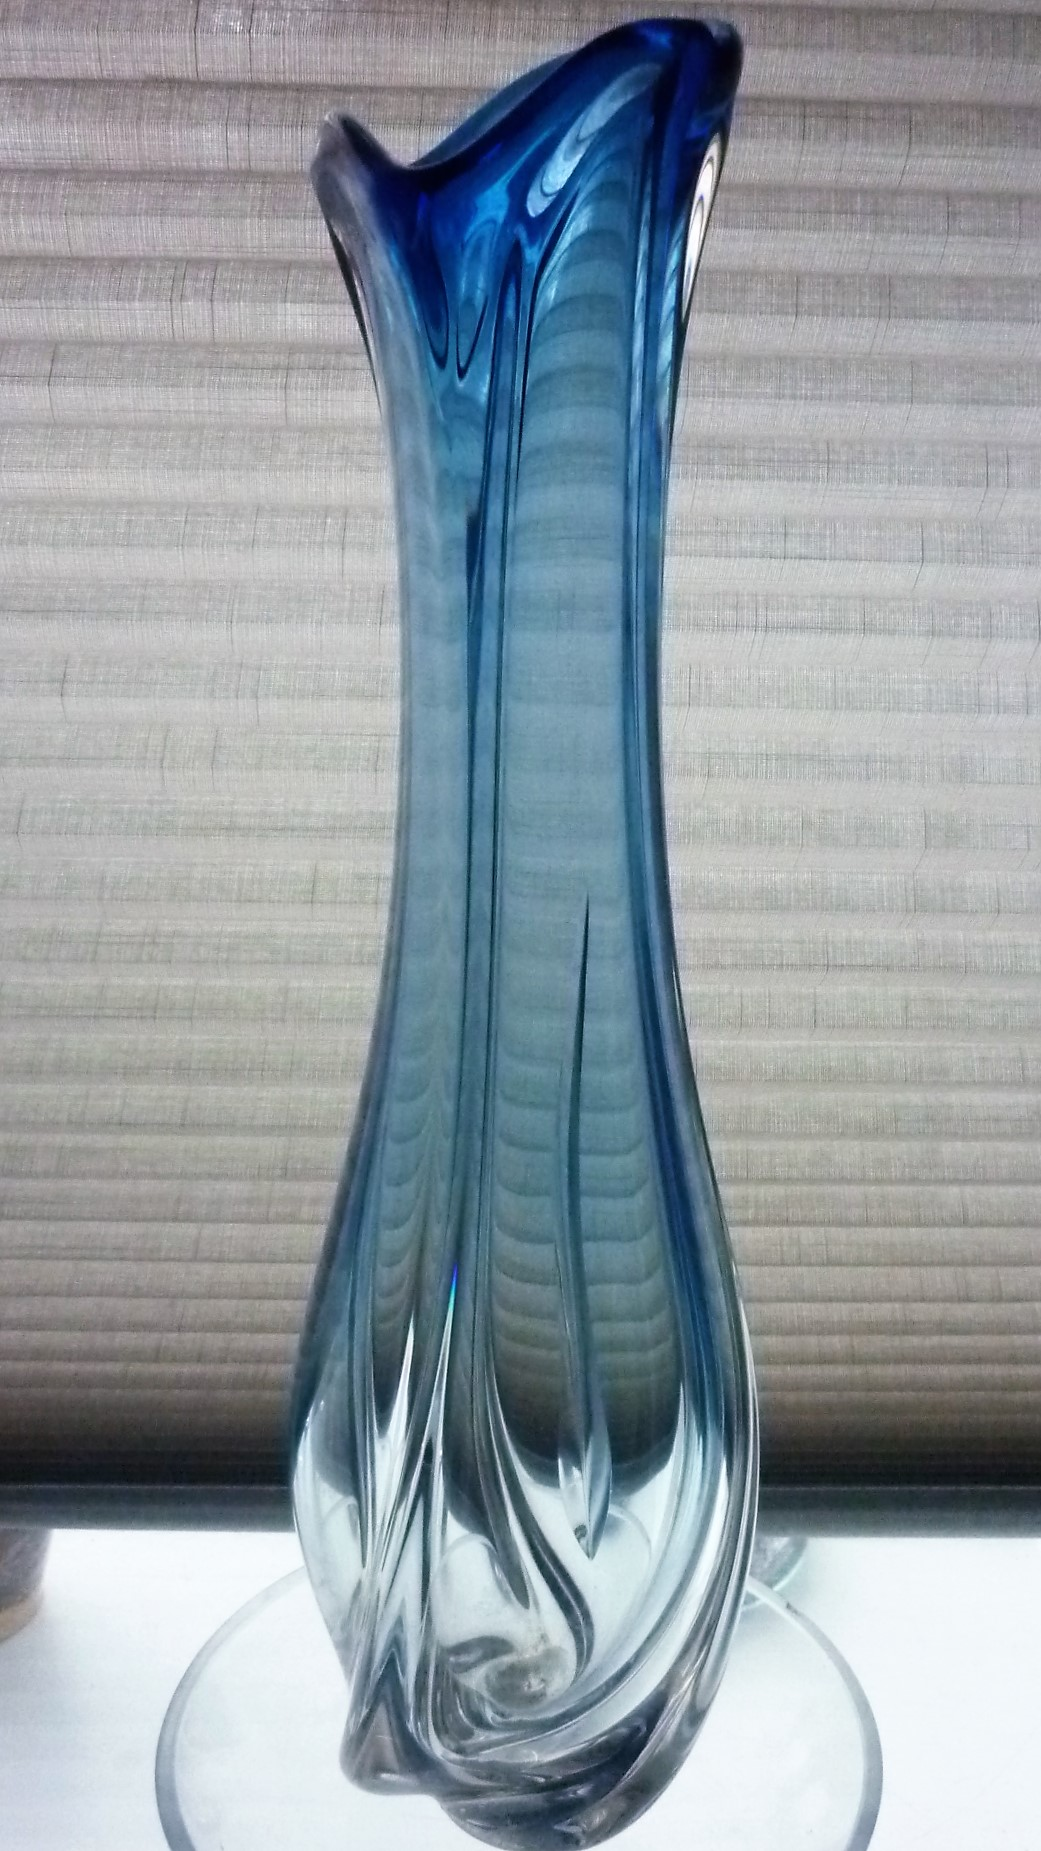 Stunning large organic form three sided twisted blue and clear crystal glass vase, designed by Charles Graffaert for Val St Lambert in the 1950s.